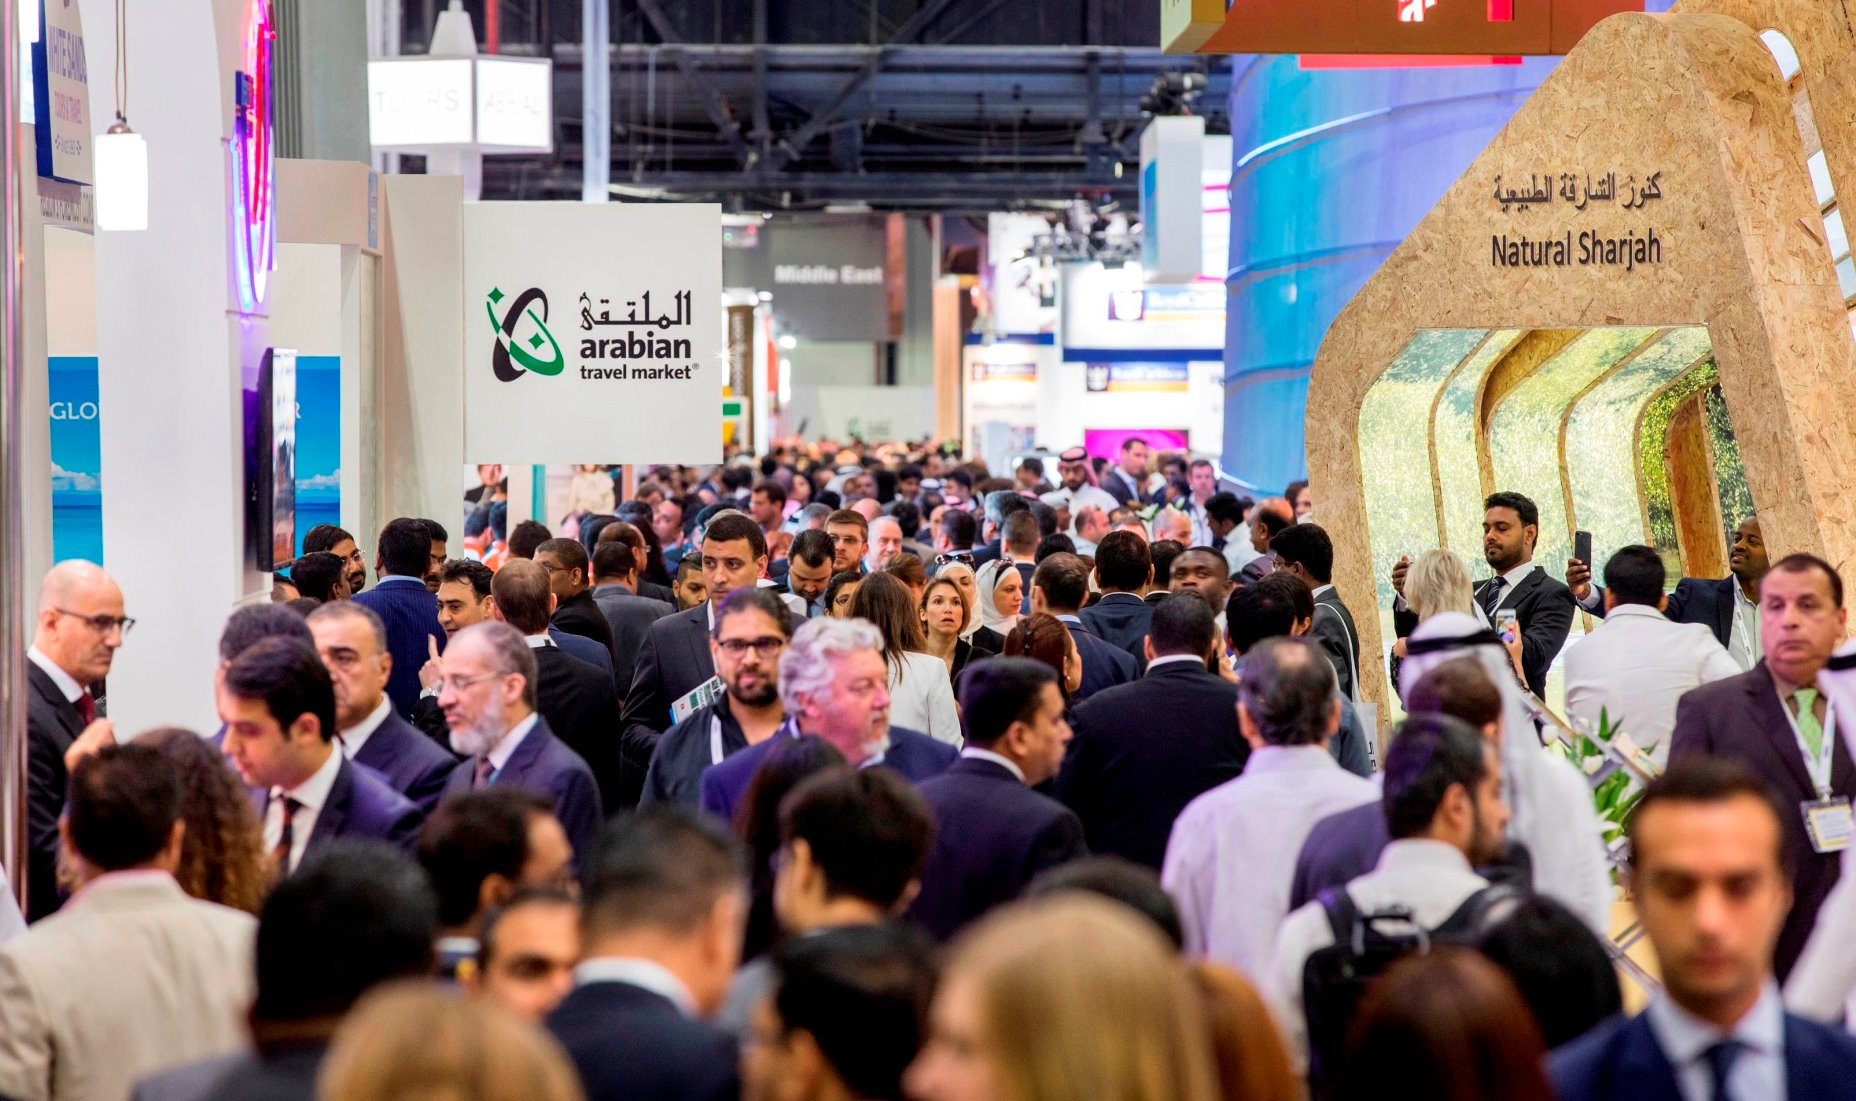 Arabian Travel Market is taking place from 22-25 April in DWTC